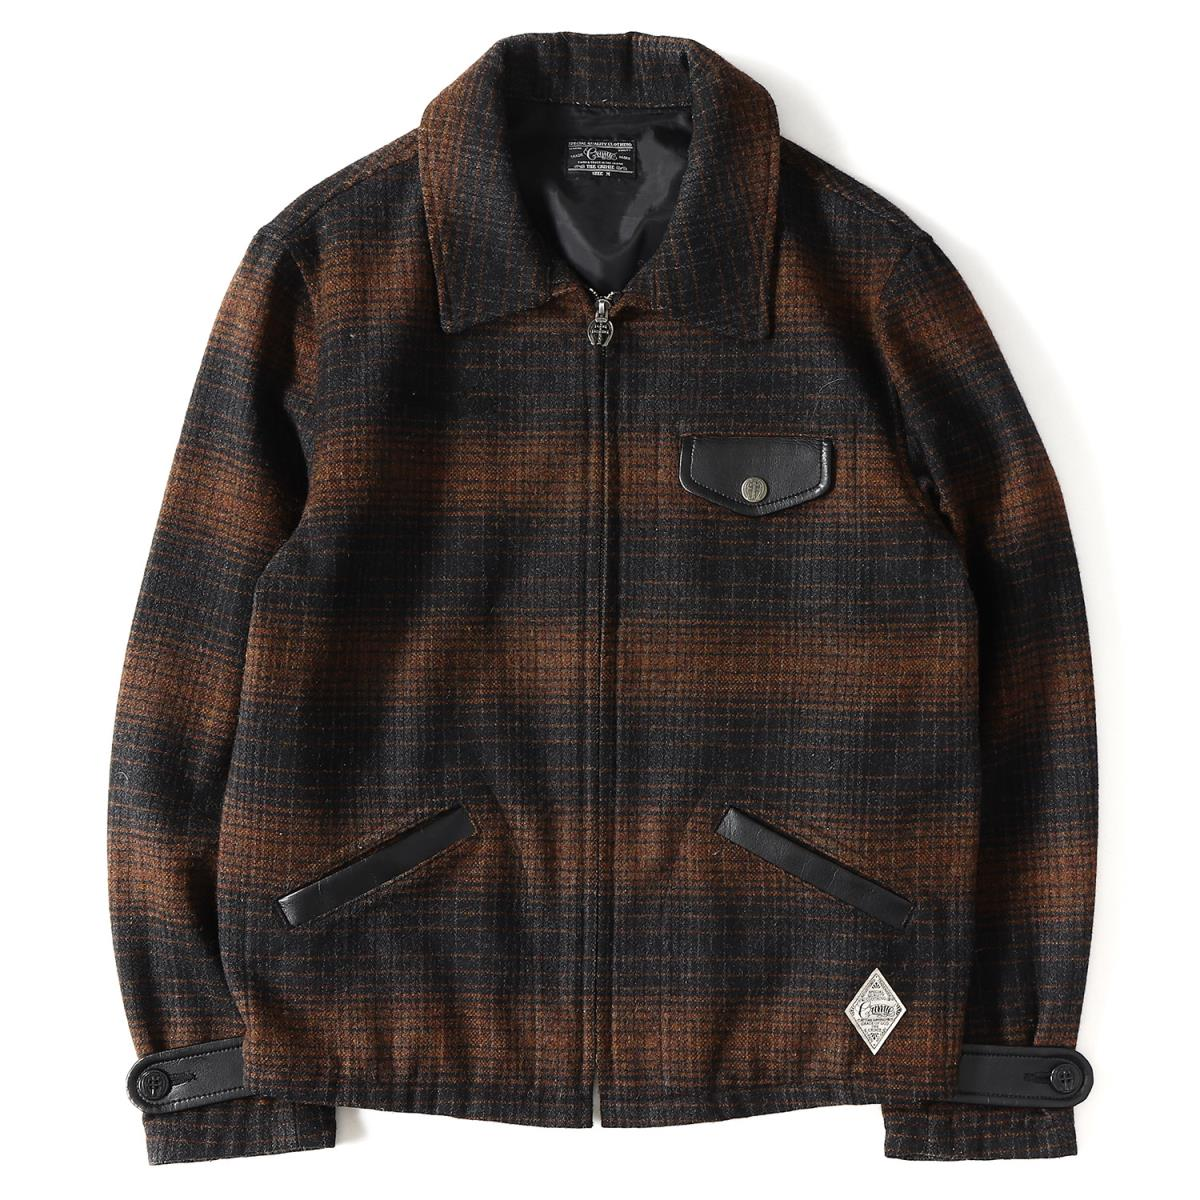 CRIMIE (gloomy me) chain logo embroidery checked pattern melton sports  jacket (SAGE BRUSH) brown X black M